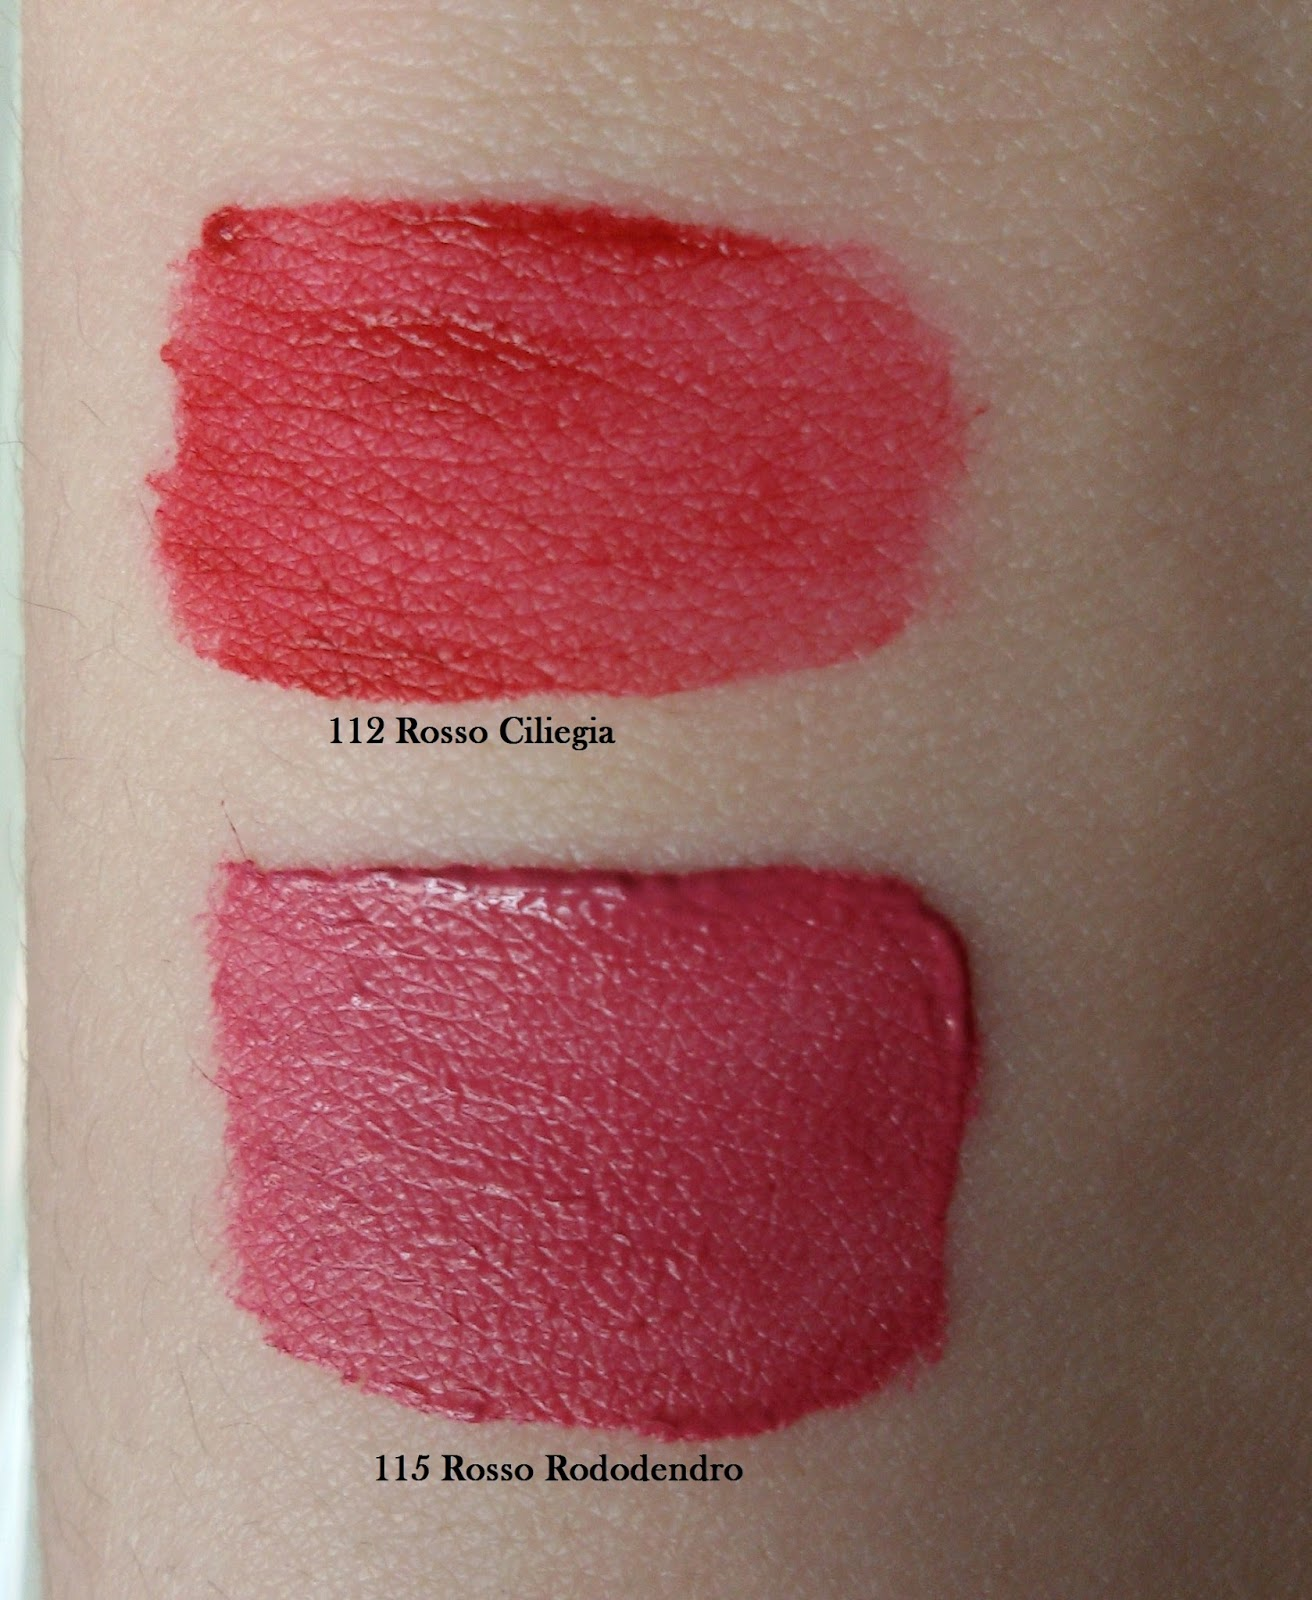 Double Touch Lipstick 112 e 115 swatch